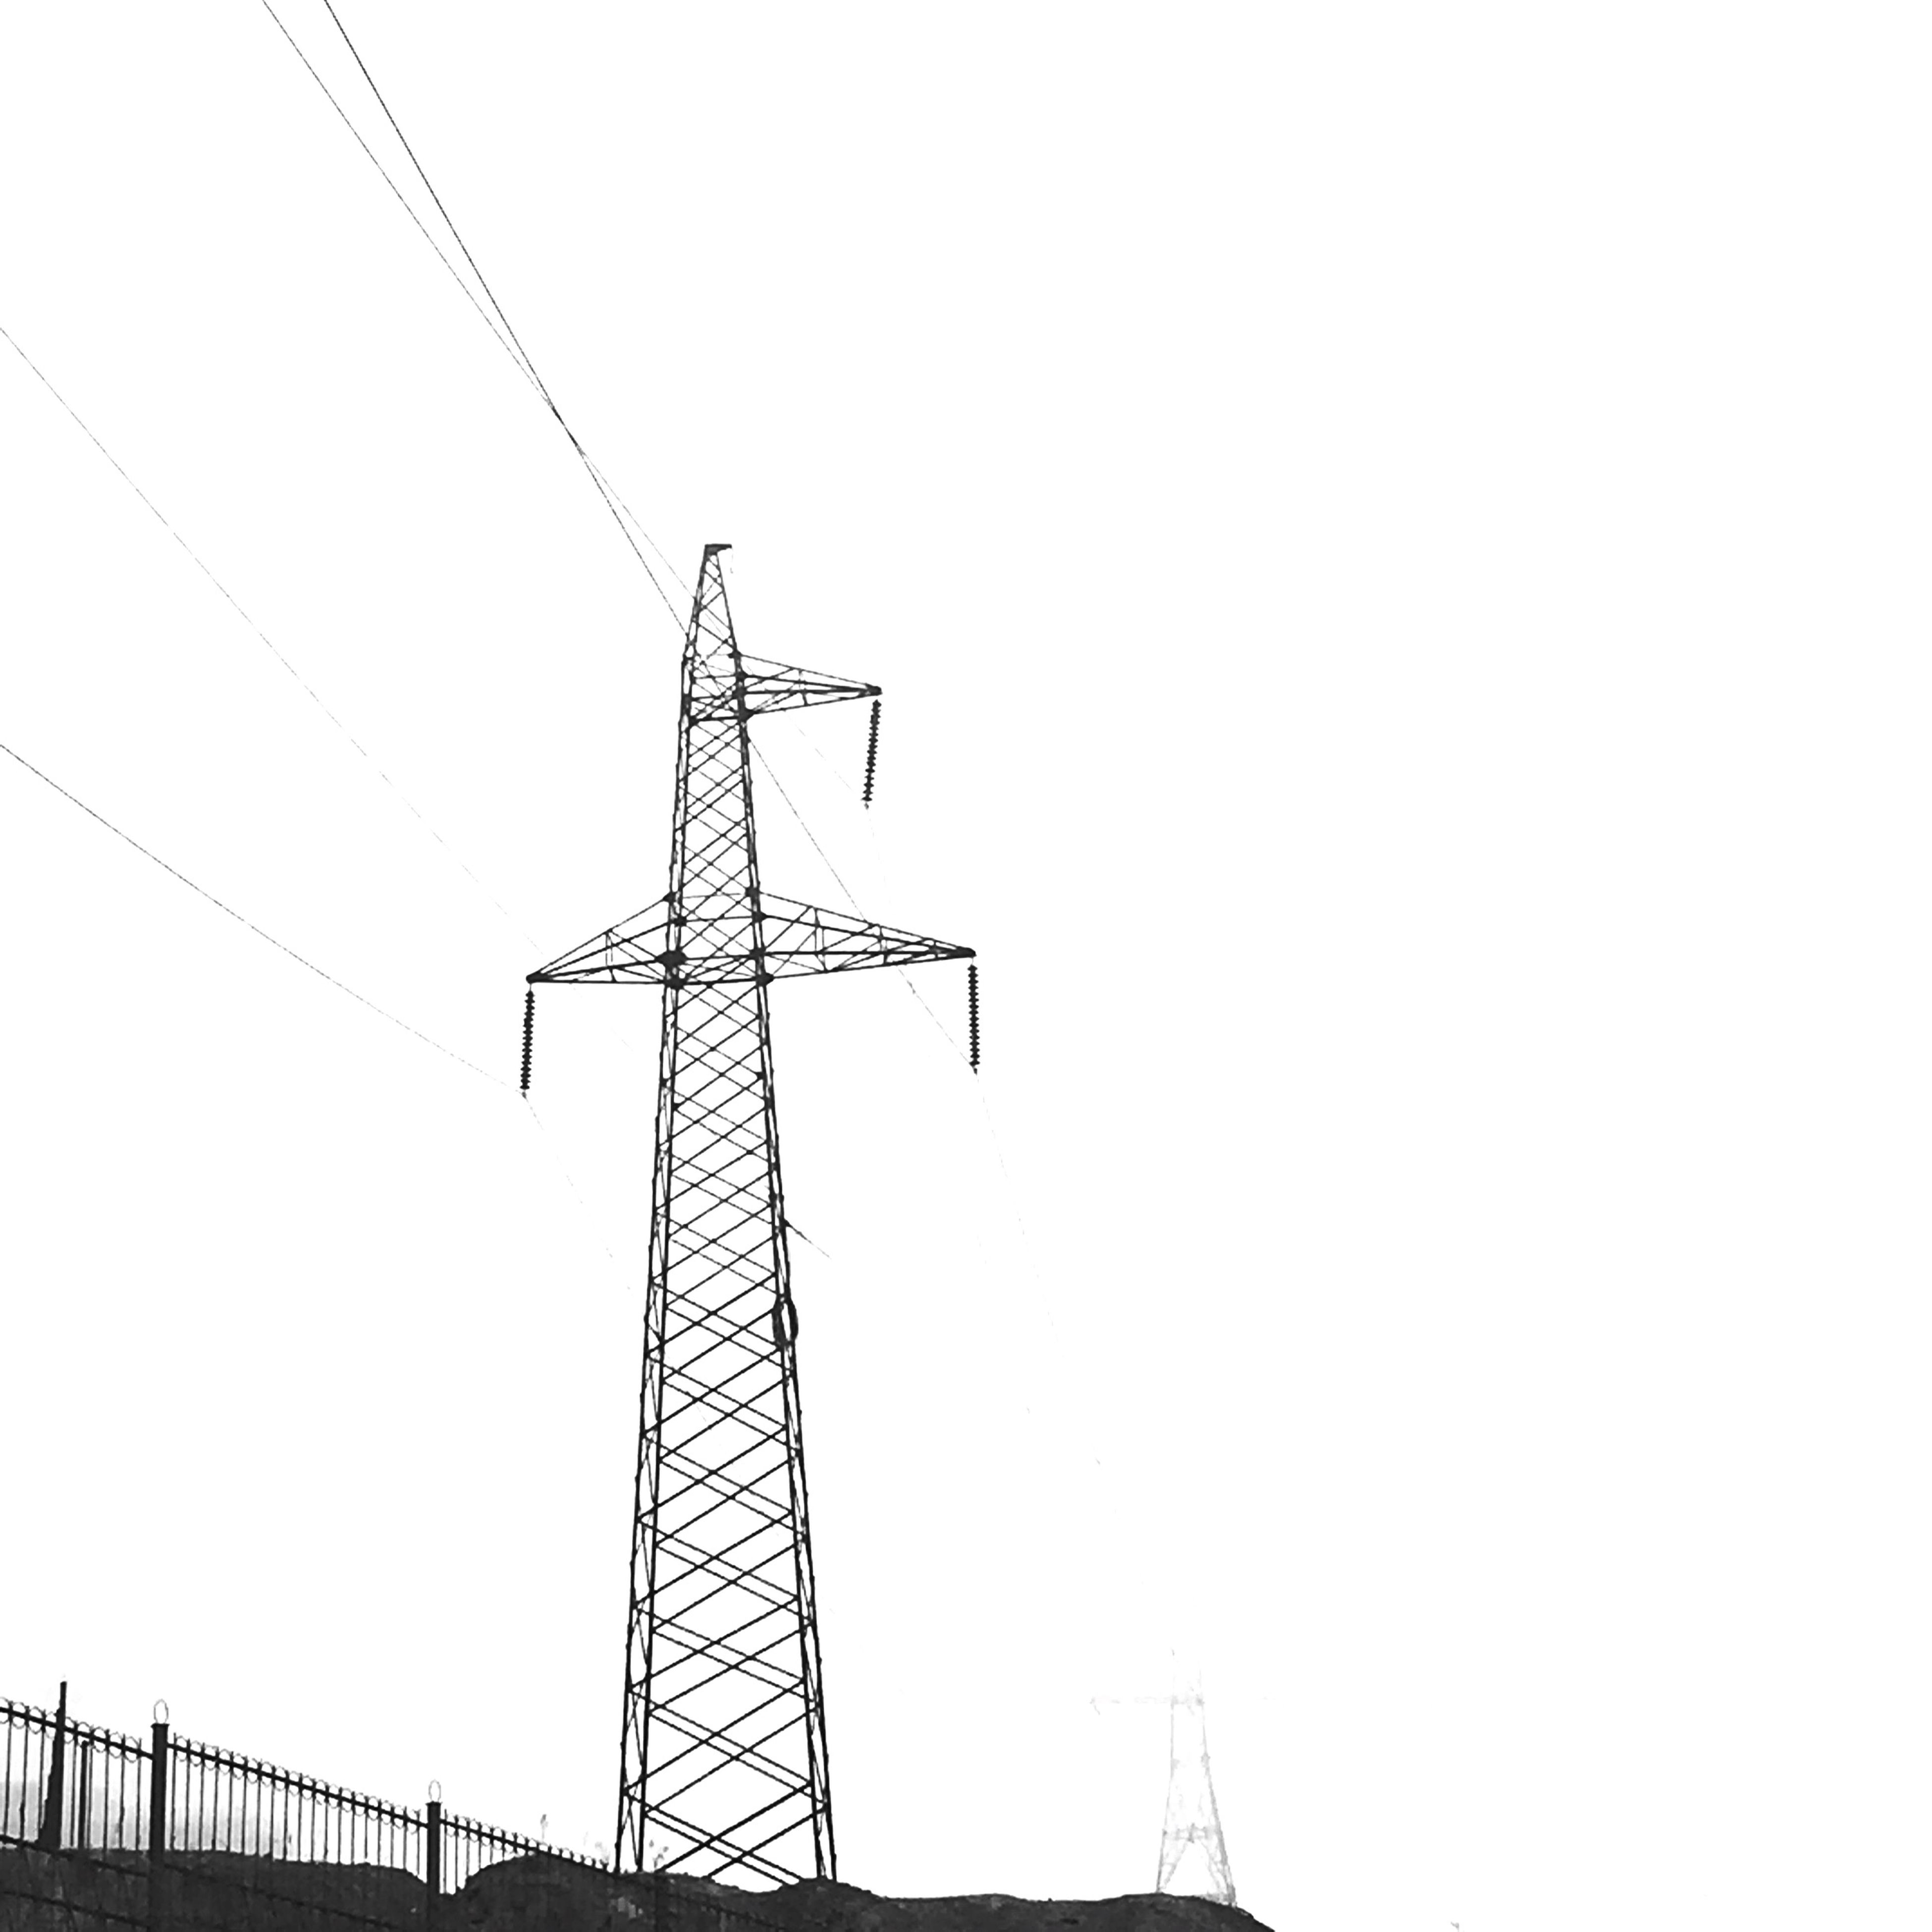 clear sky, low angle view, technology, fuel and power generation, copy space, construction site, built structure, crane - construction machinery, electricity pylon, development, electricity, power line, power supply, connection, architecture, construction, day, outdoors, tall - high, industry